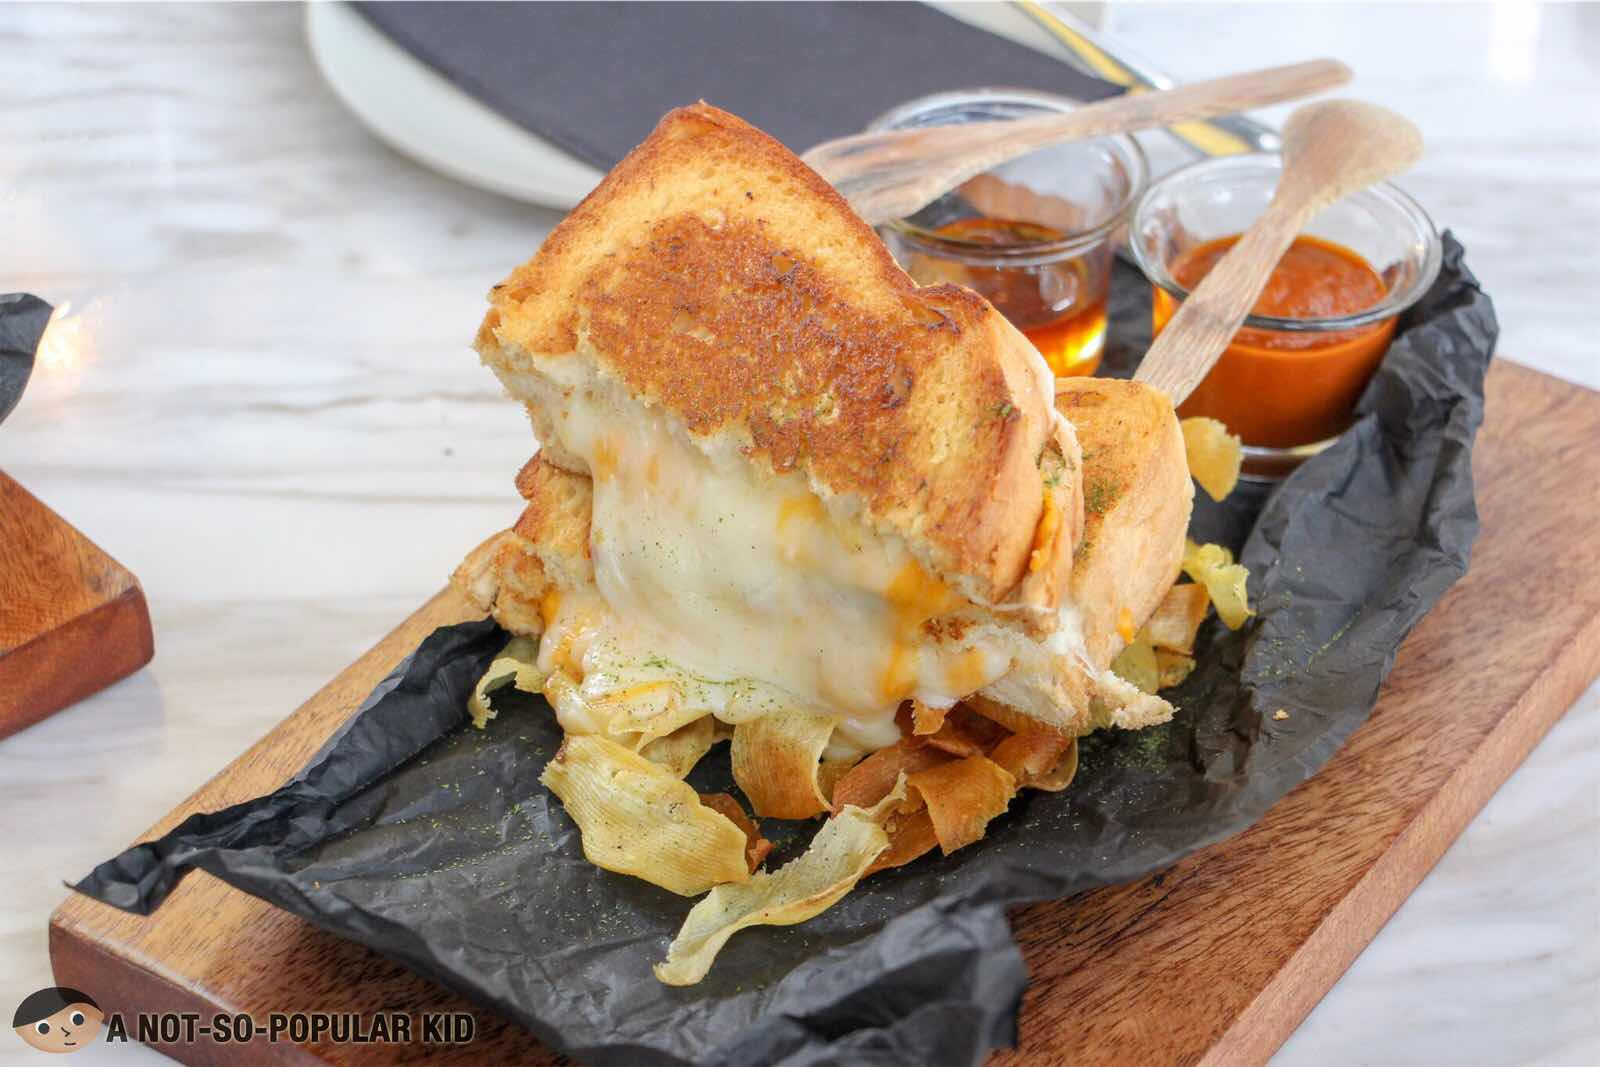 Classic Grilled Cheese of Melt Grilled Cheesery, Alabang